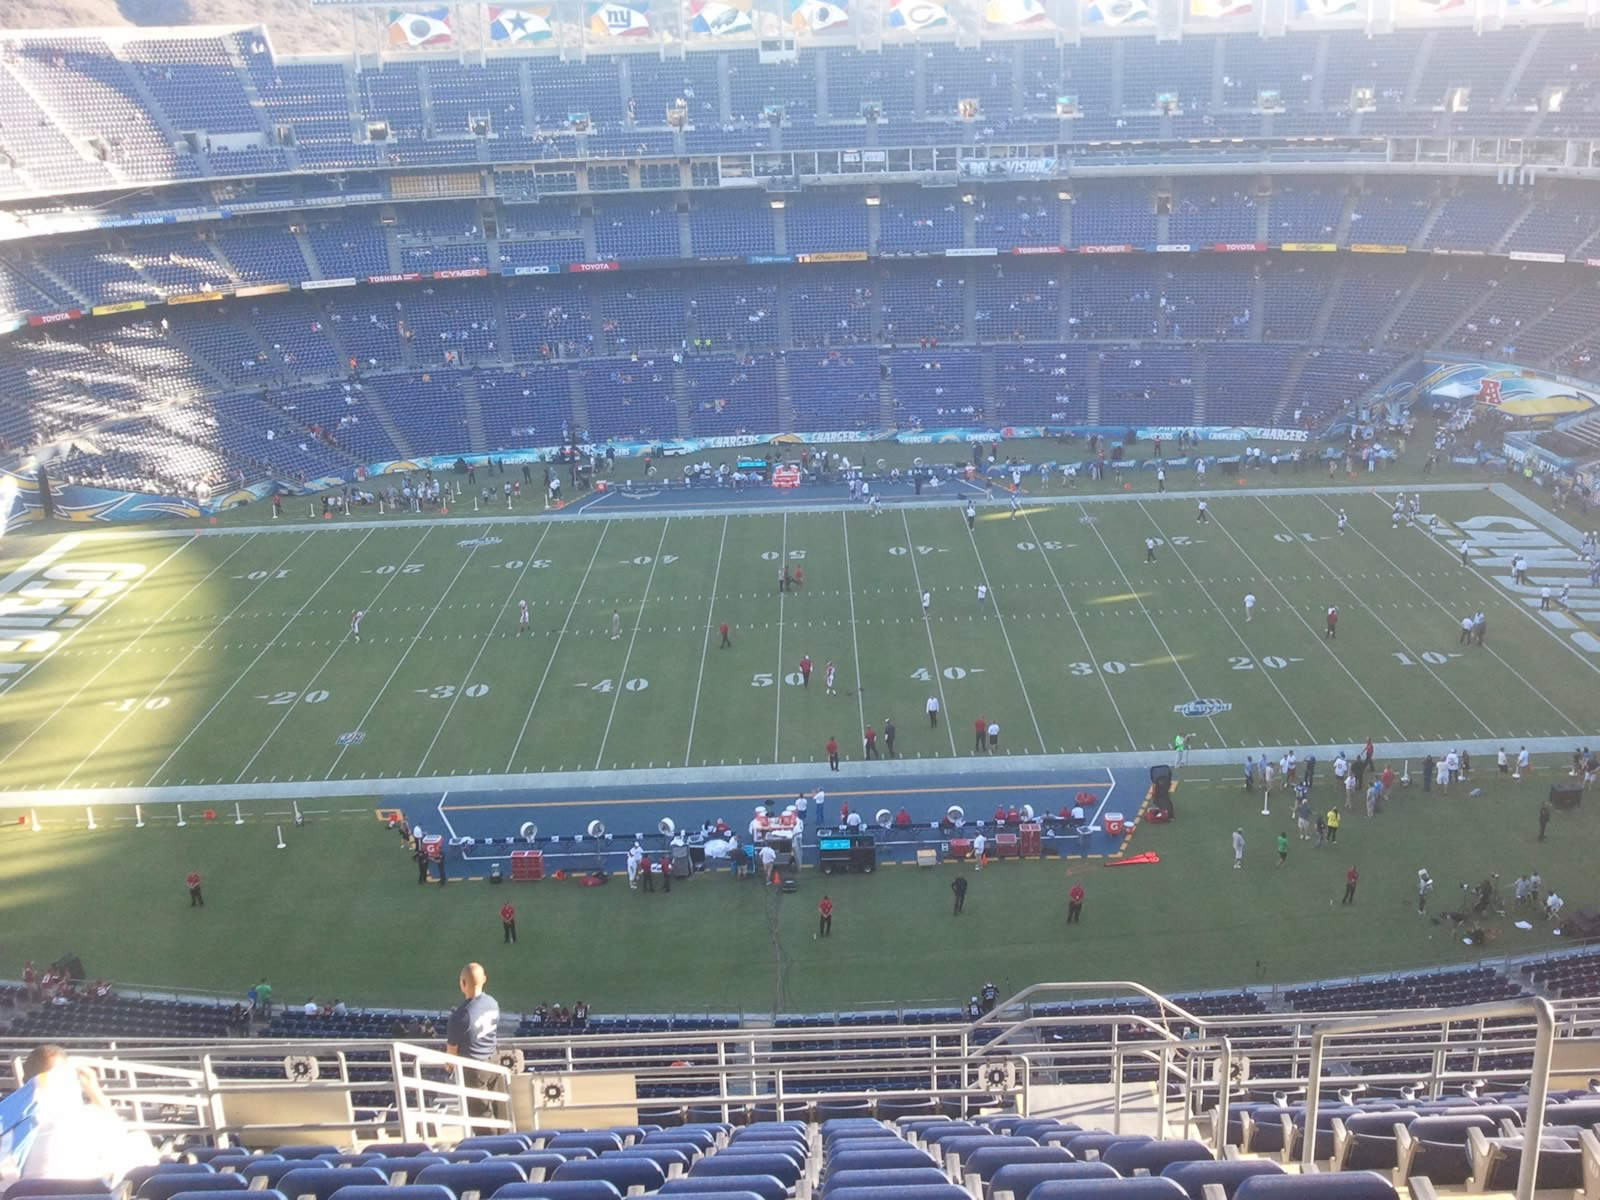 Seat View for Qualcomm Stadium View Level 6V, Row 17